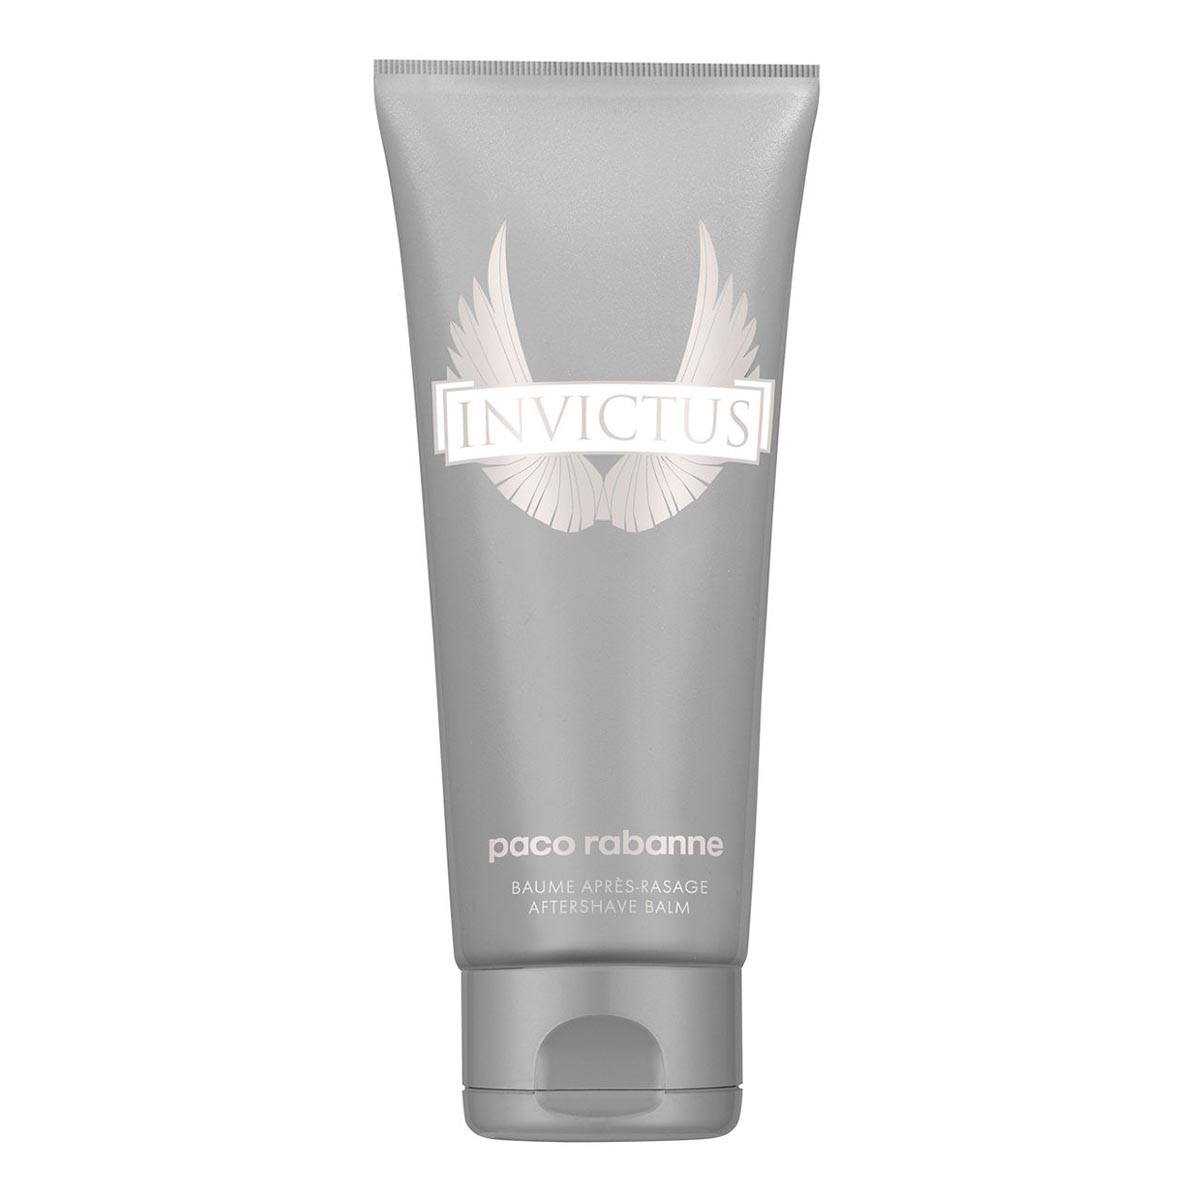 Paco rabanne invictus after shave balsamo 100ml